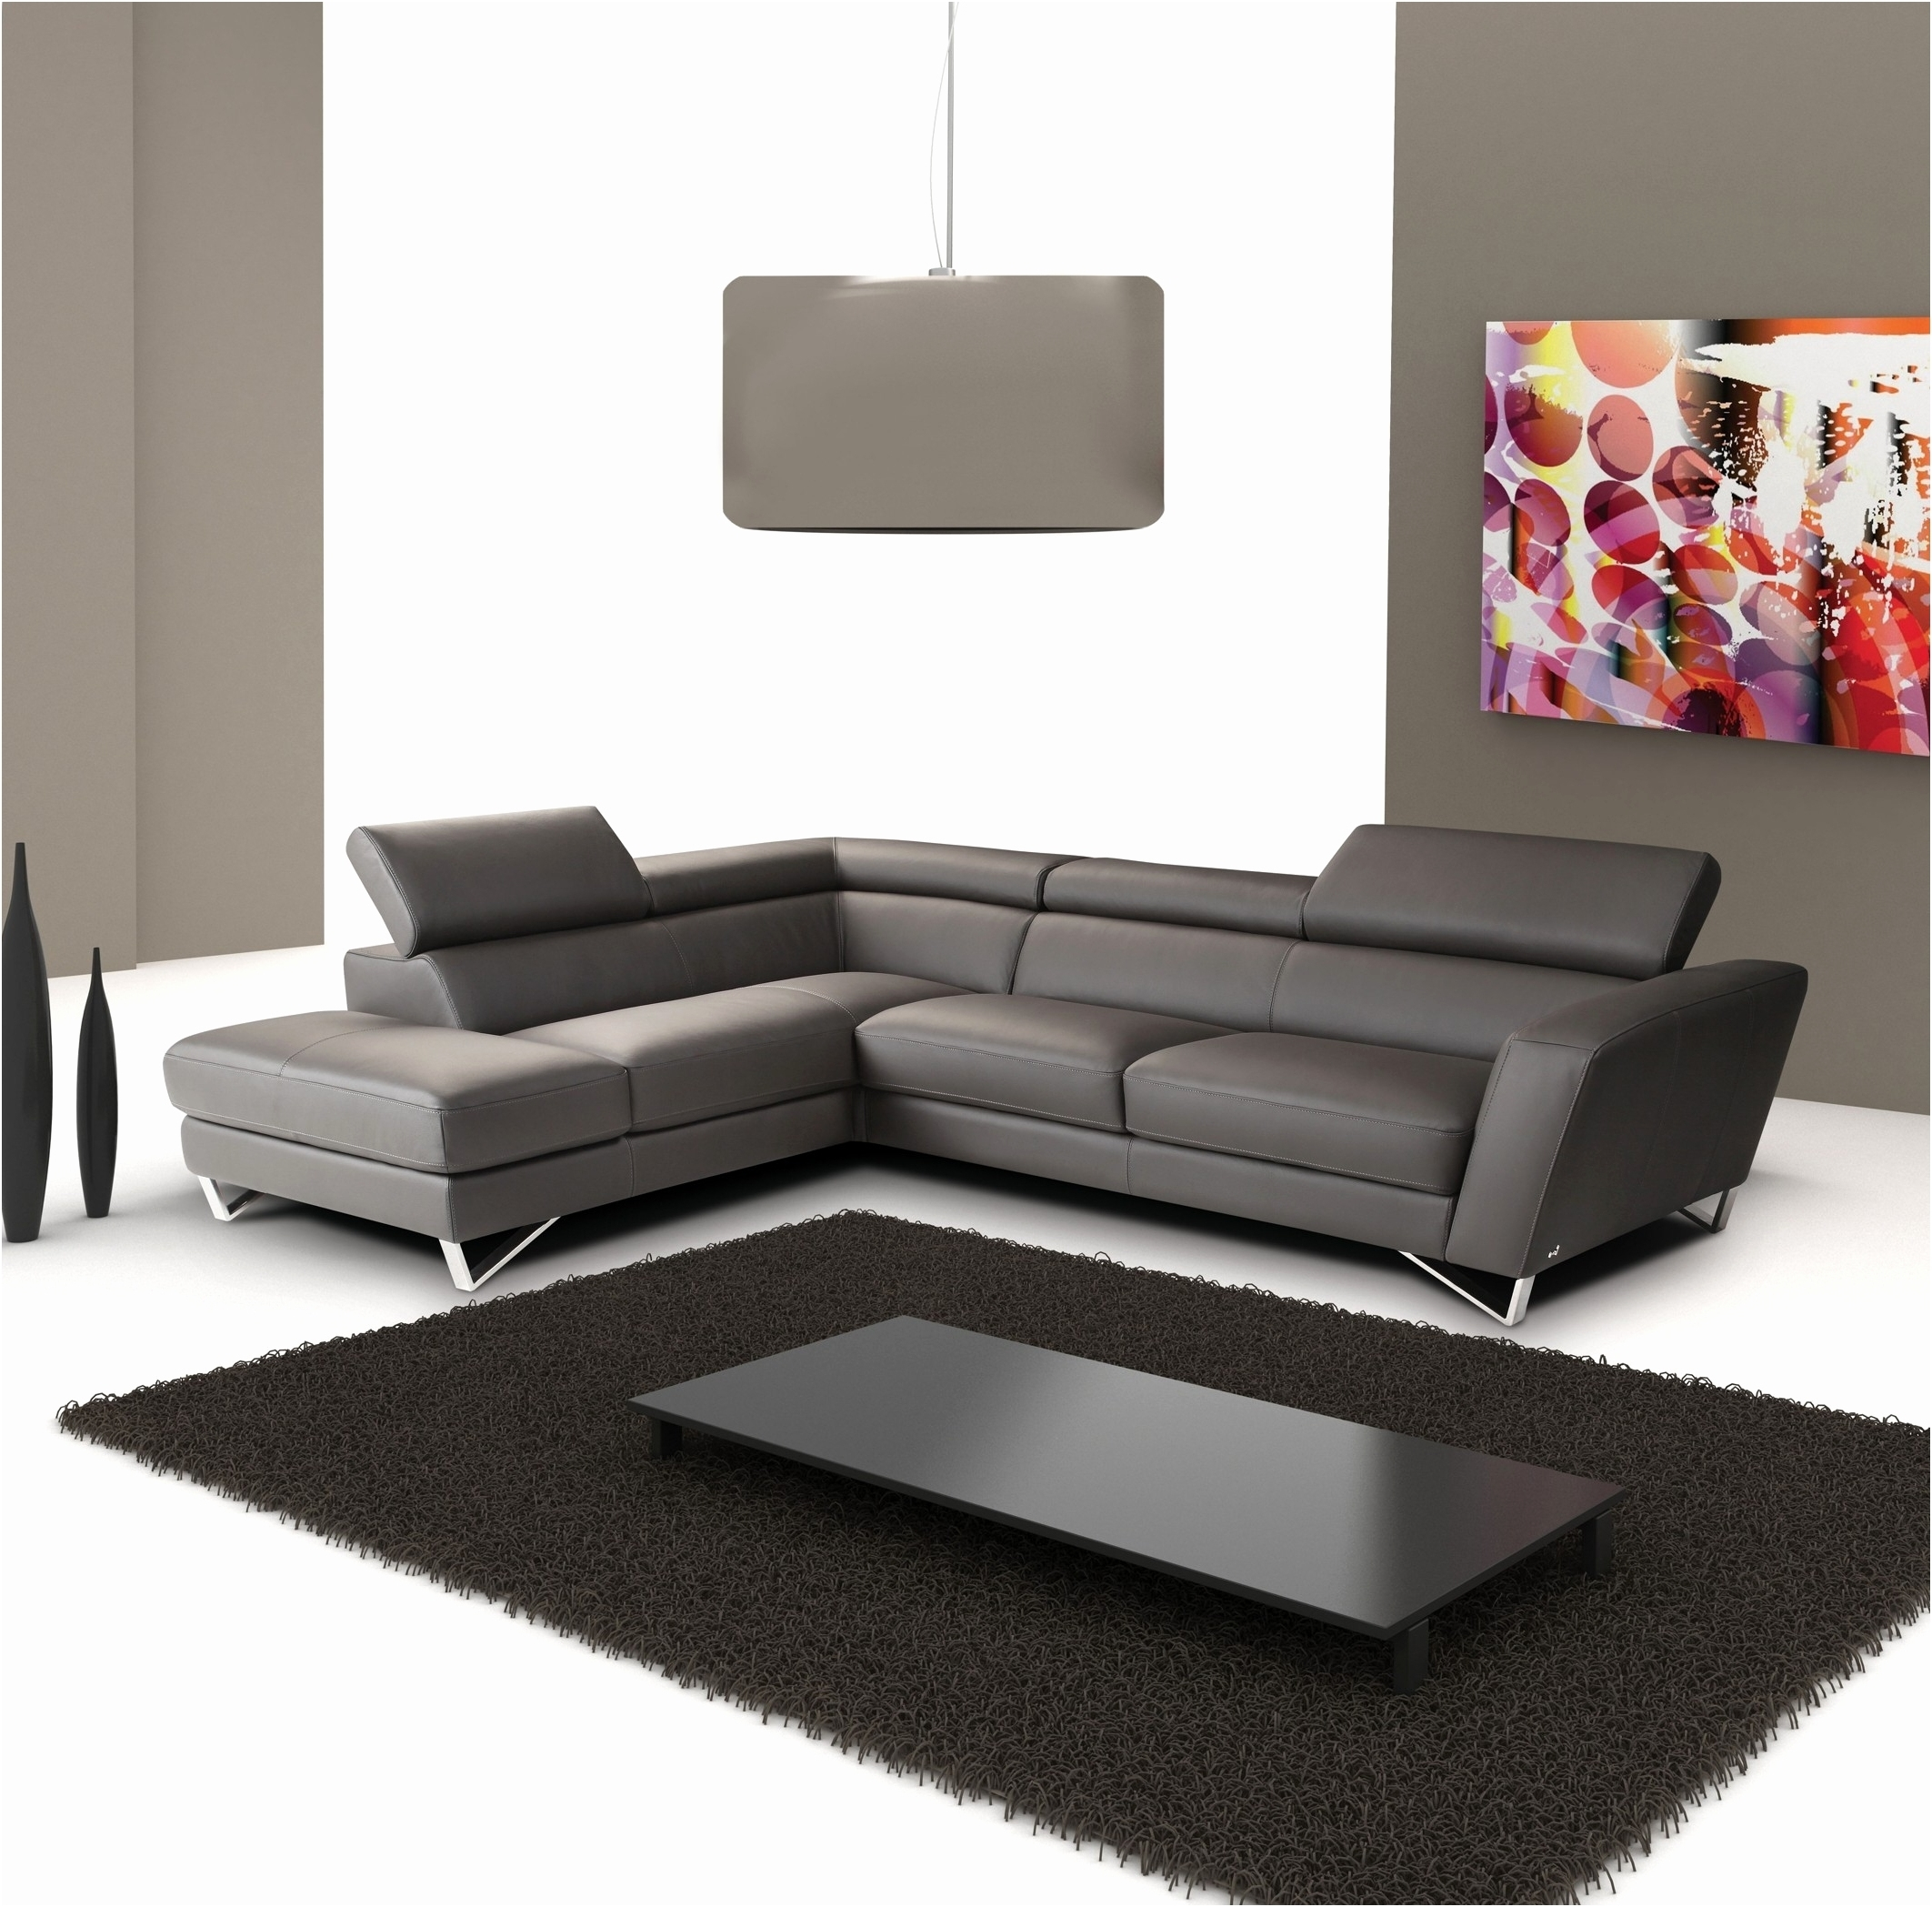 Canada Sale Sectional Sofas Throughout 2018 Sectional Sofa Clearance Brown Leather Fabrica Sofas Canada (View 4 of 20)